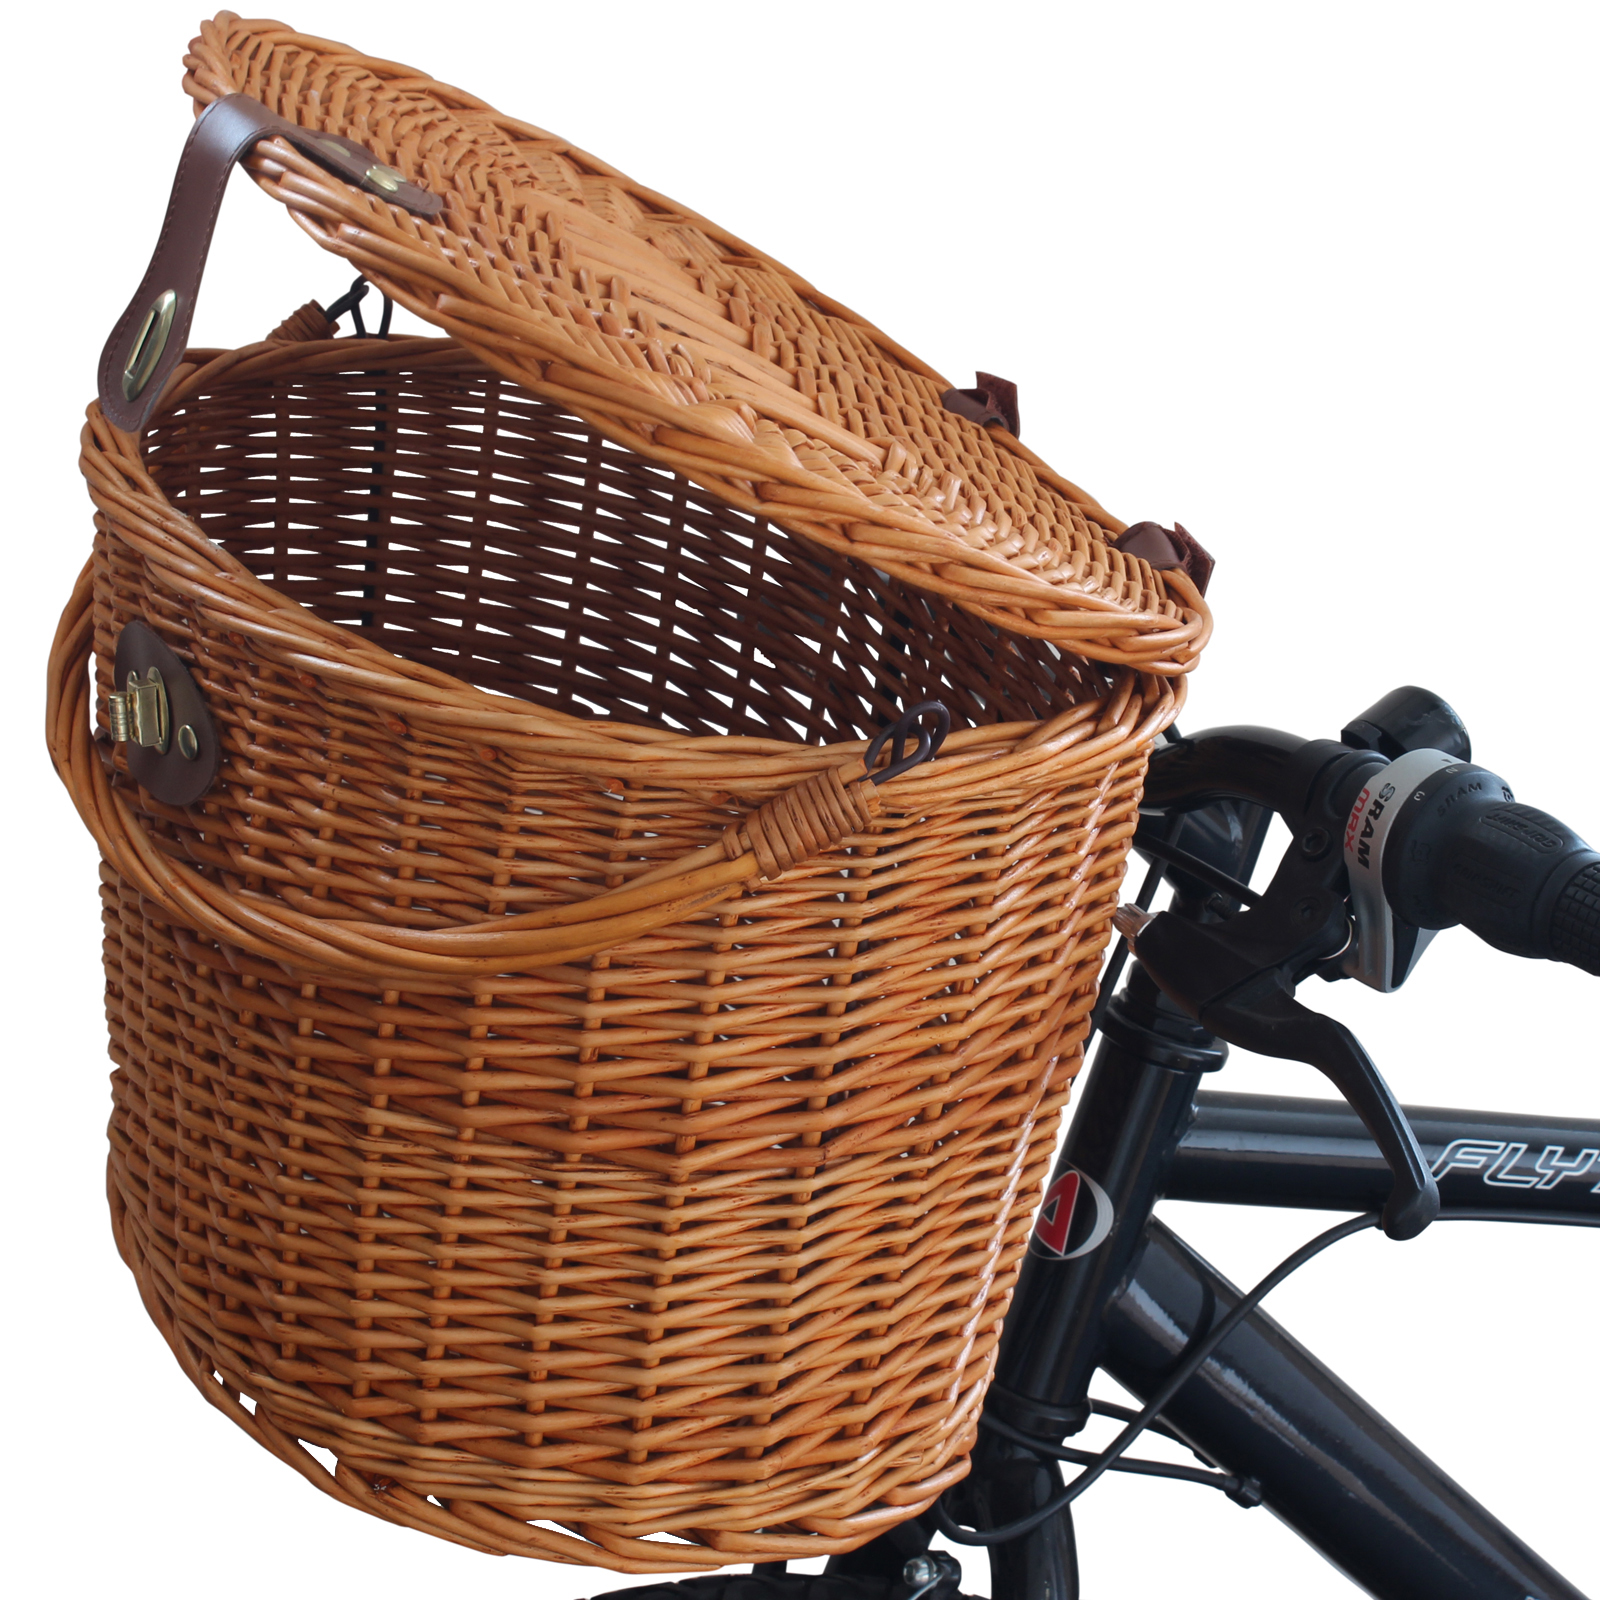 Wicker Bicycle Basket With Handle : Wicker bicycle front picnic basket with lid carry handle